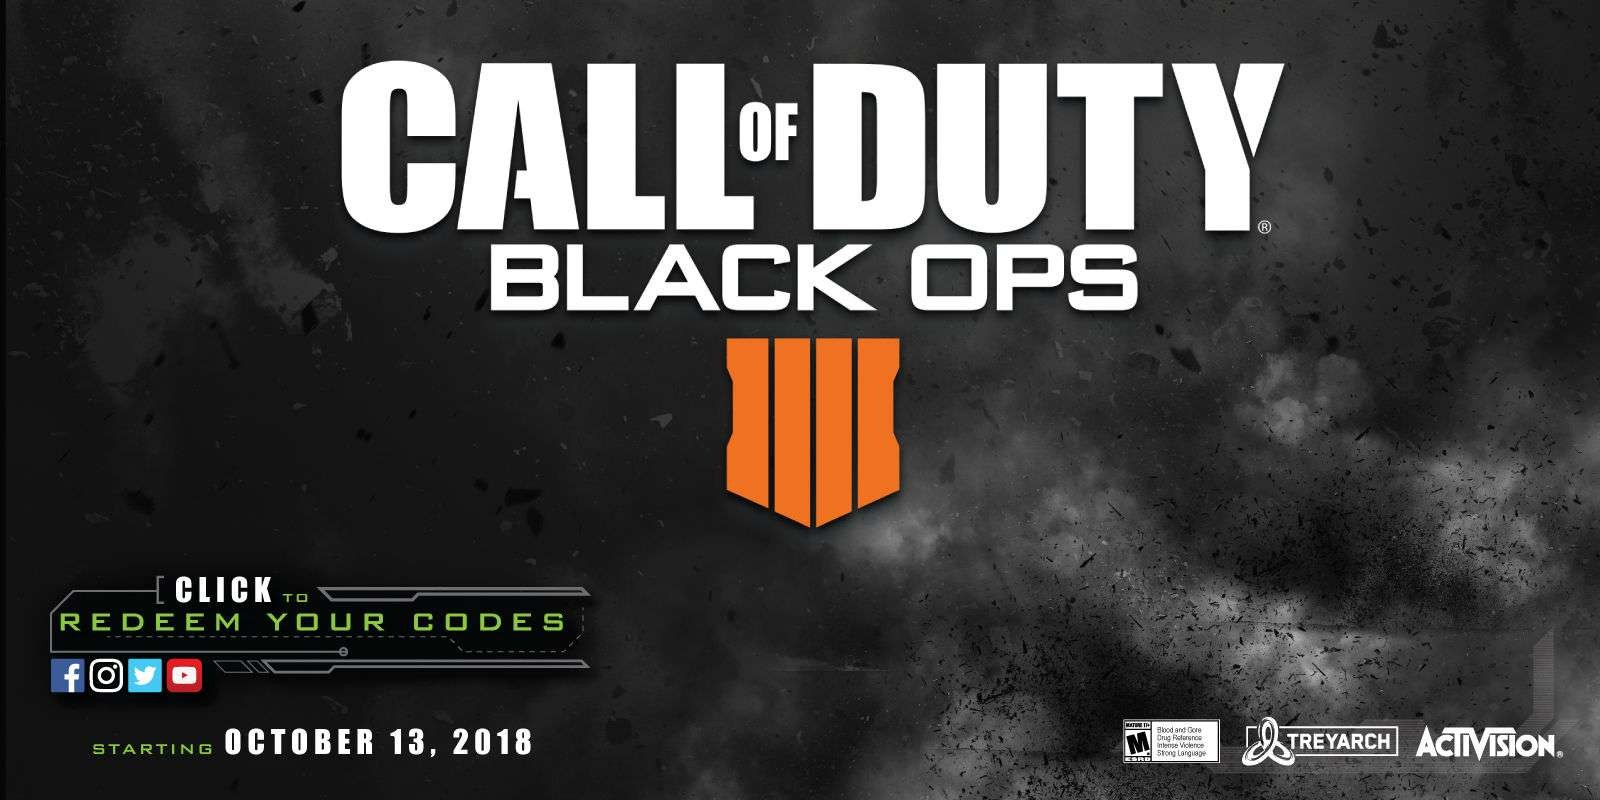 Call of Duty - Black Ops 4 - Code Redemption